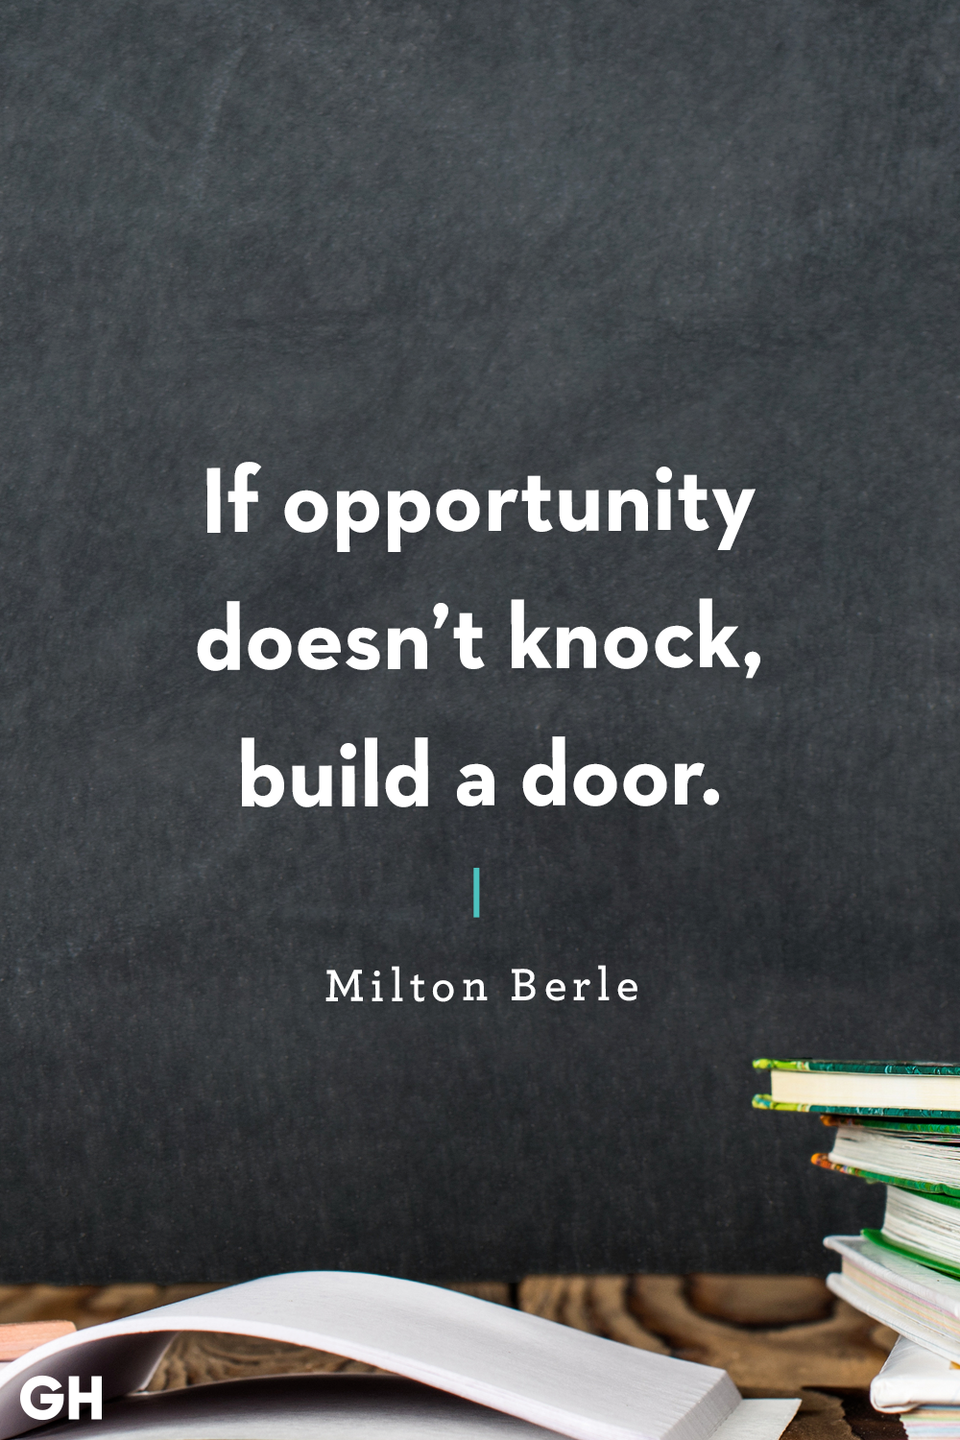 <p>If opportunity doesn't knock, build a door.</p>